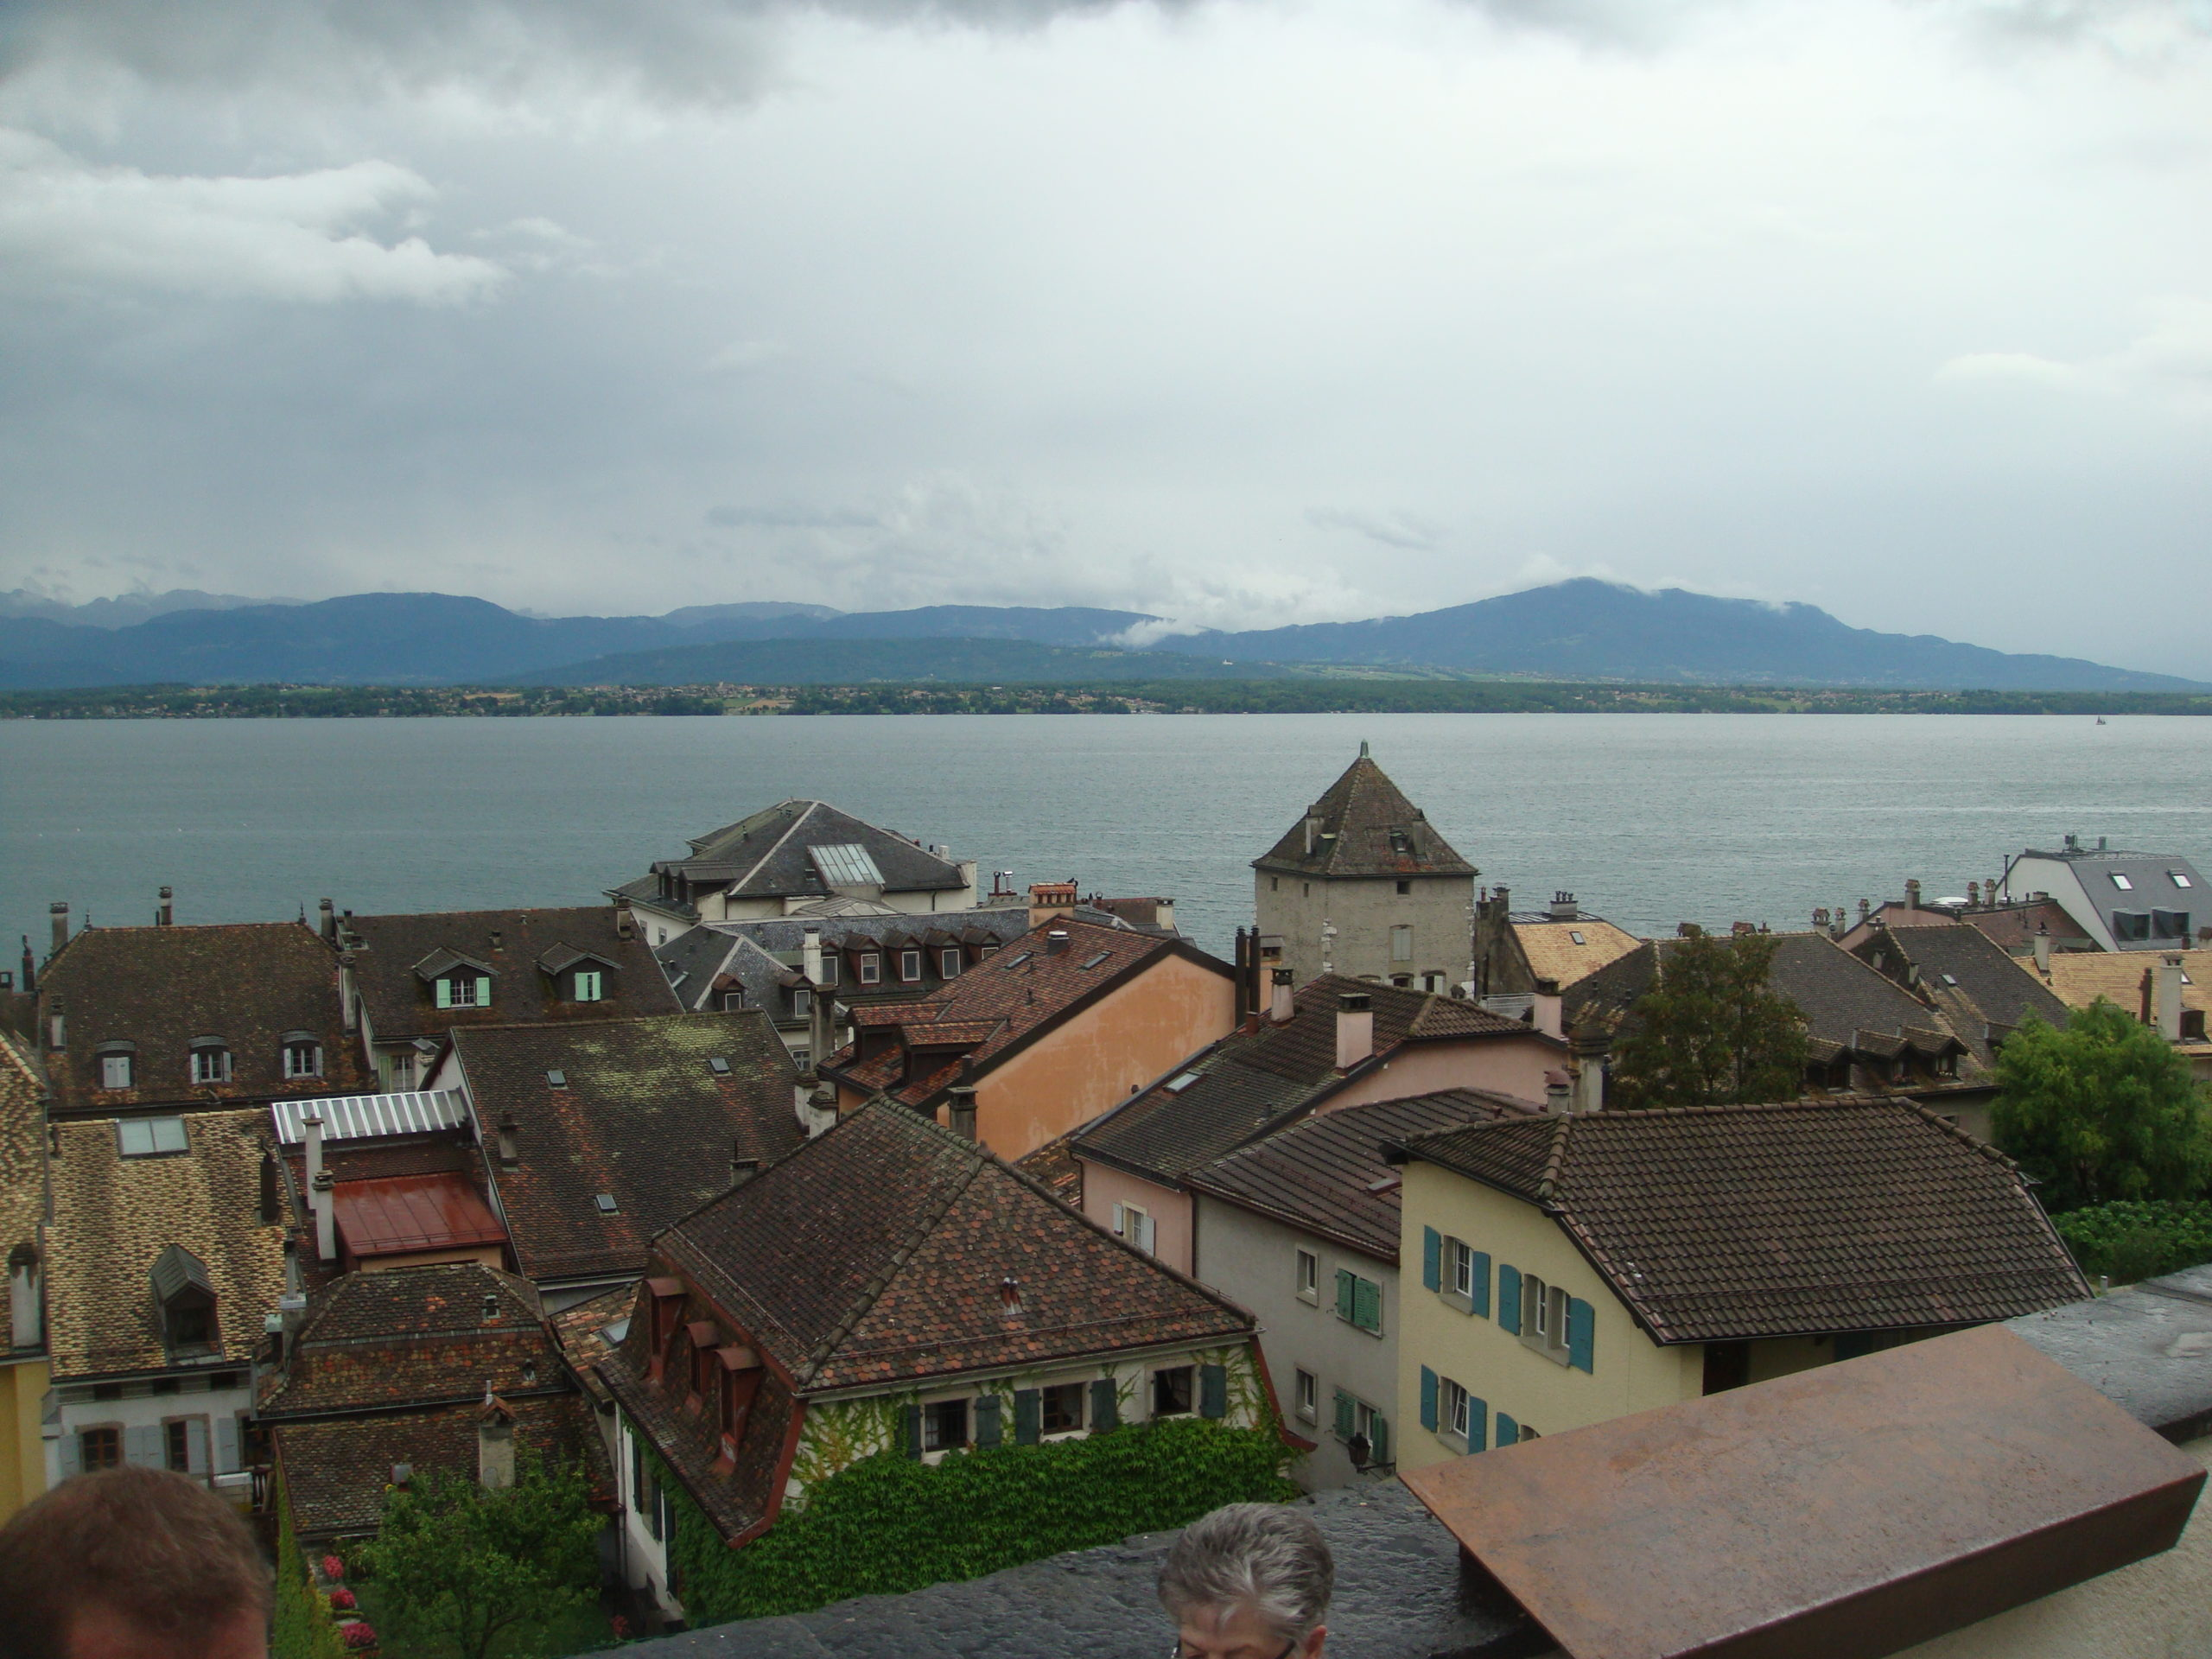 Chateau de Nyon 1 EBJ Chronicles